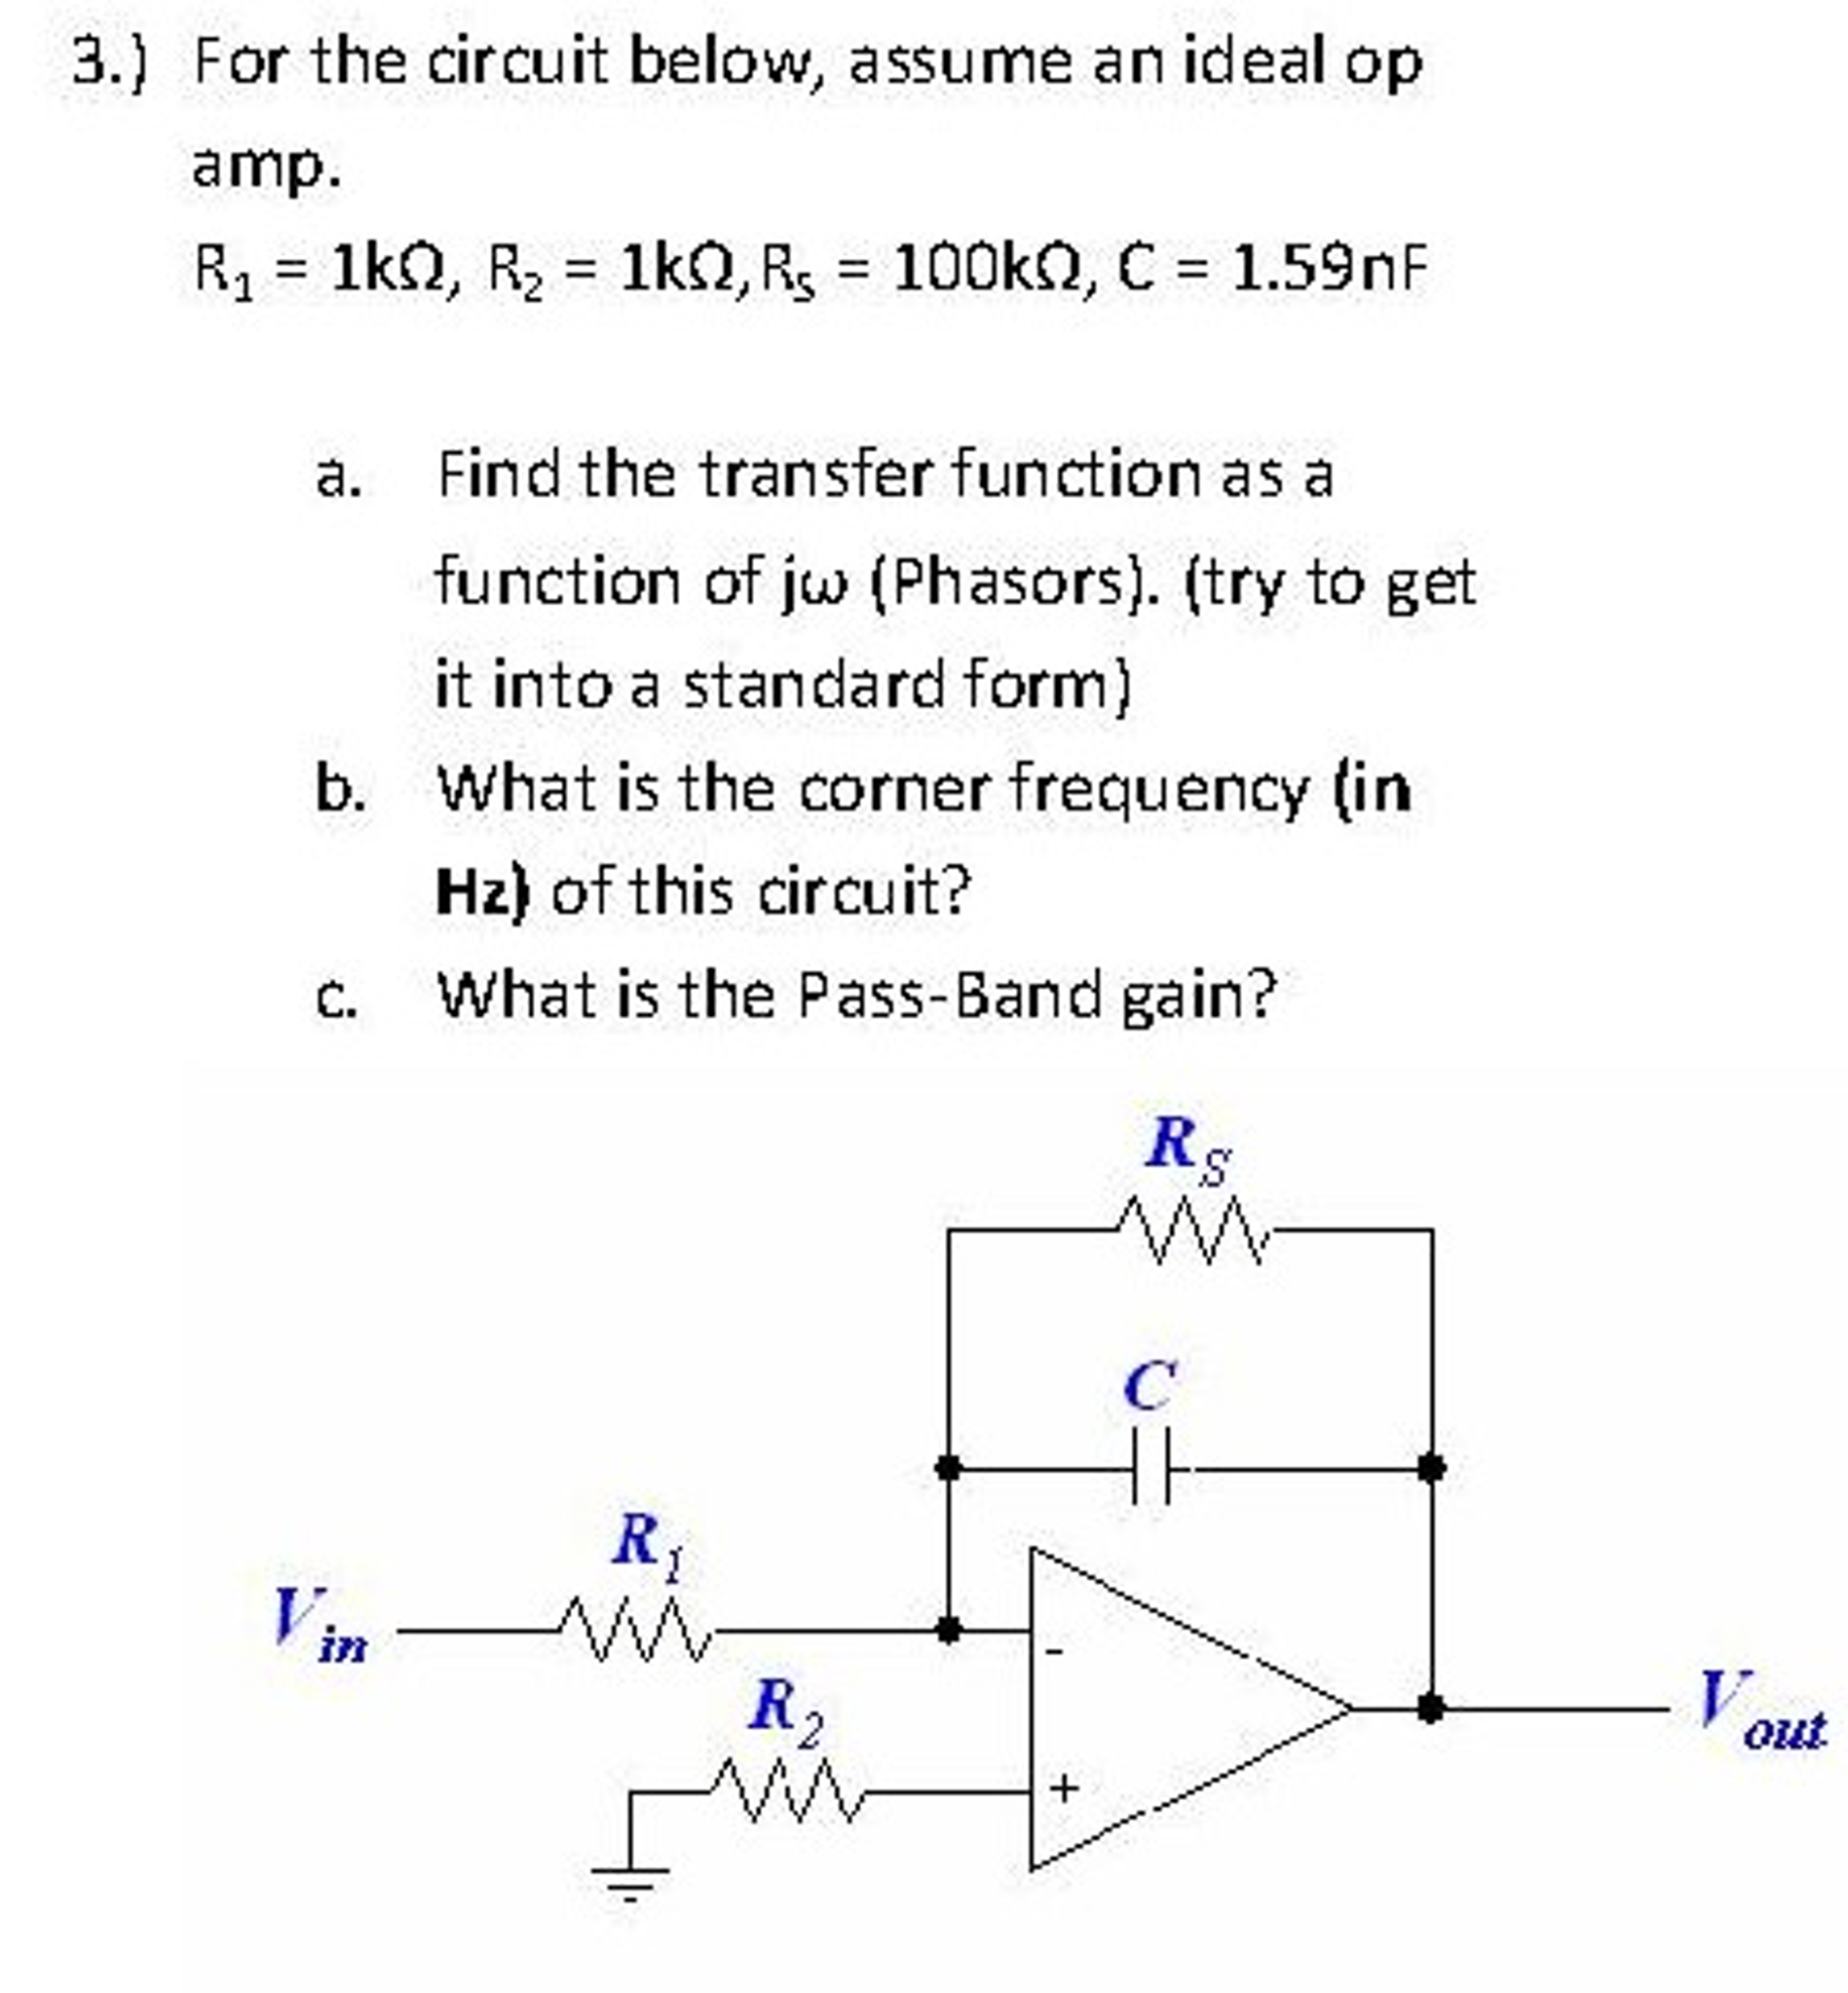 Electrical engineering archive november 02 2016 chegg for the circuit below assume an ideal op amp r falaconquin